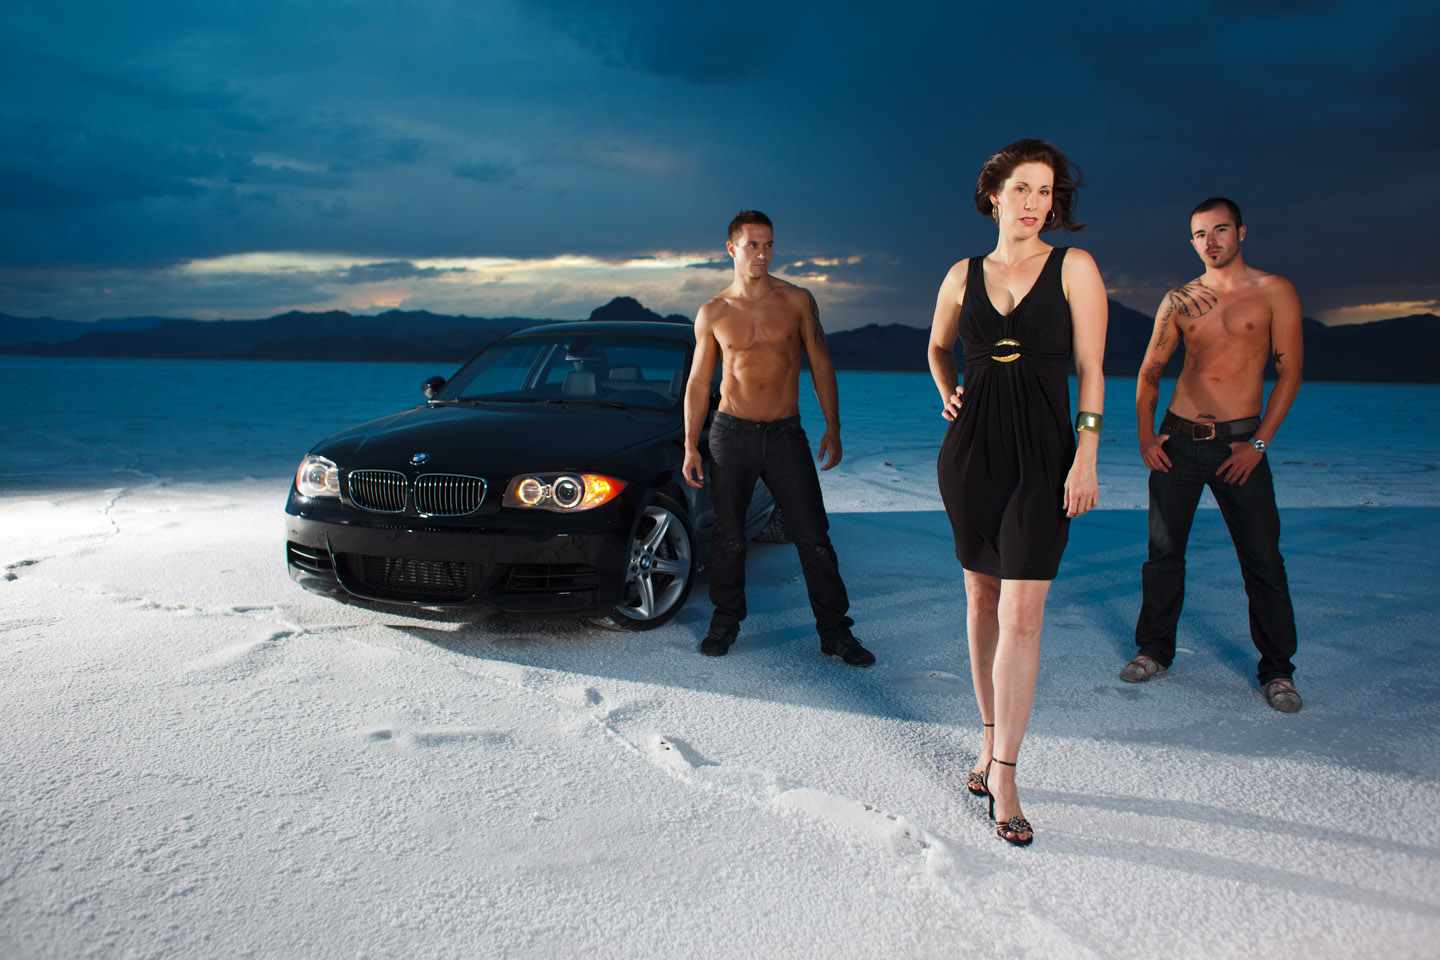 models on the Salt Flats